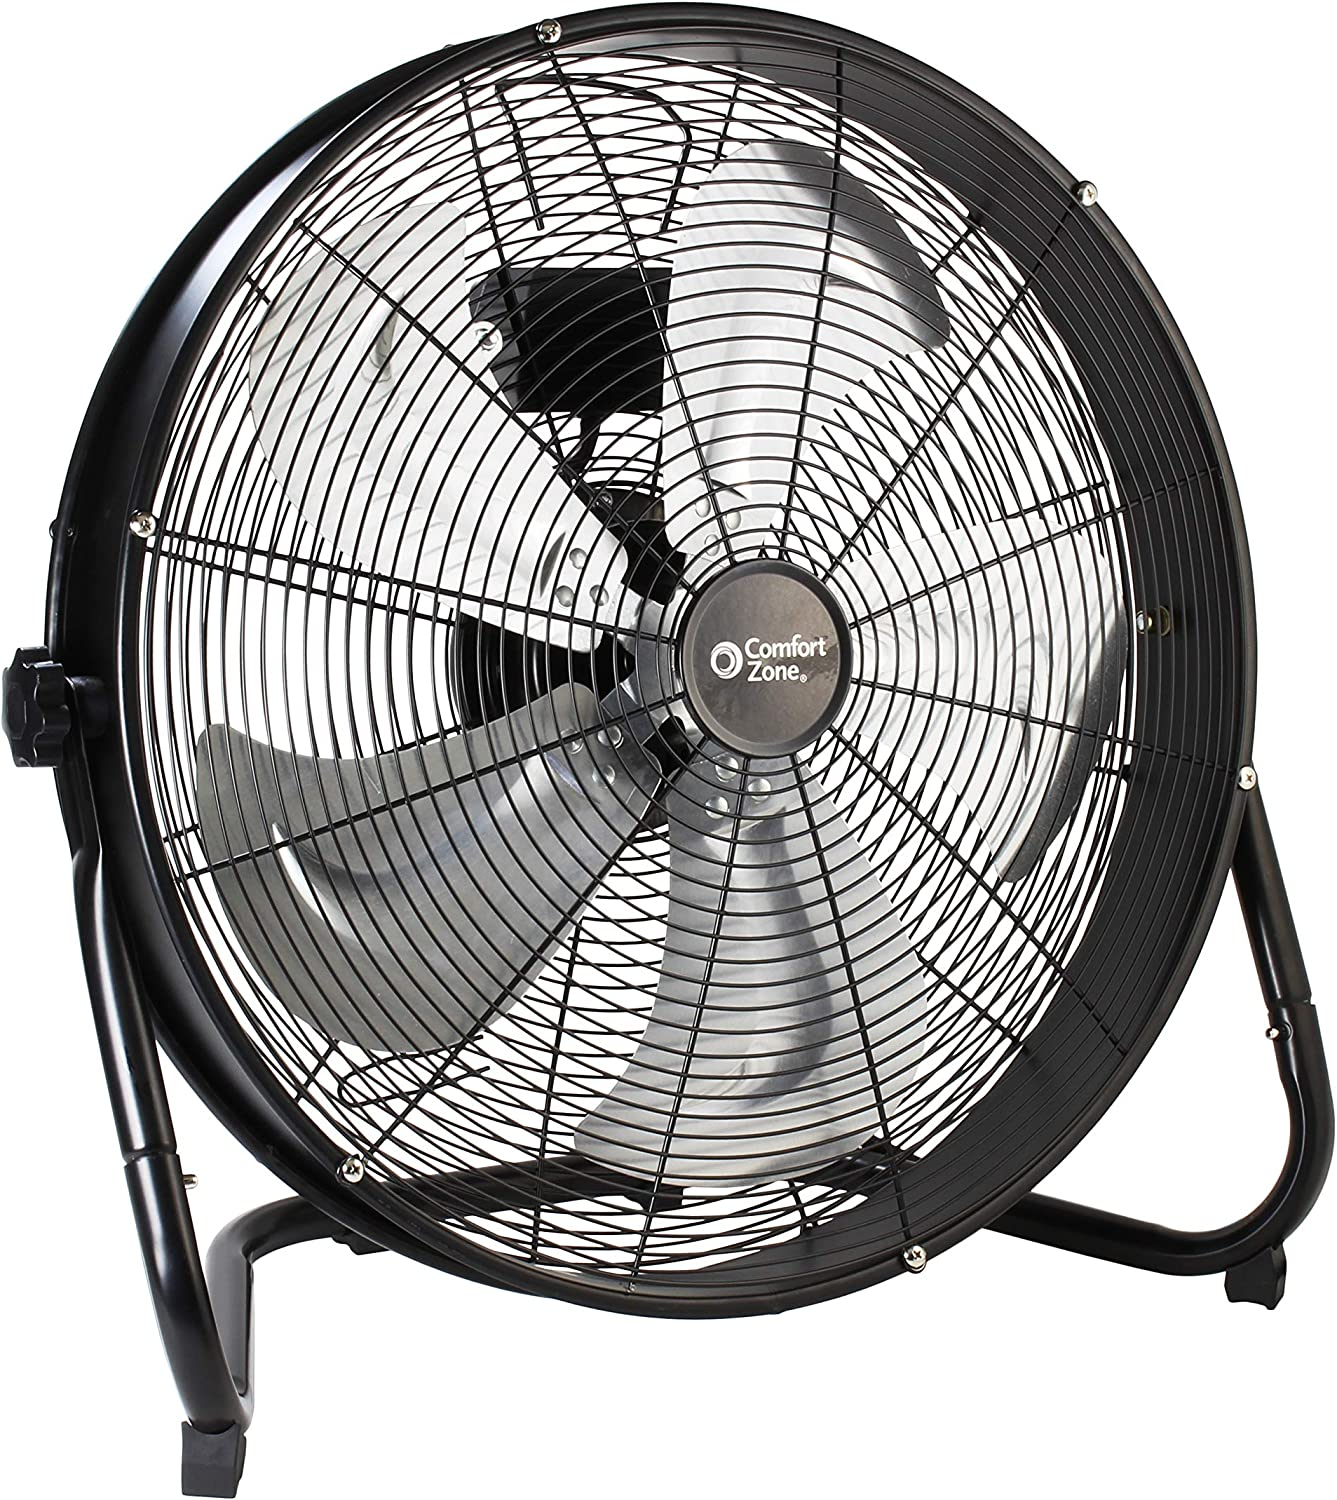 Comfort Zone CZHV20S High-Velocity Industrial 3-Speed Black Slim-Profile Drum Fan with Aluminum Blades and Adjustable Tilt 20